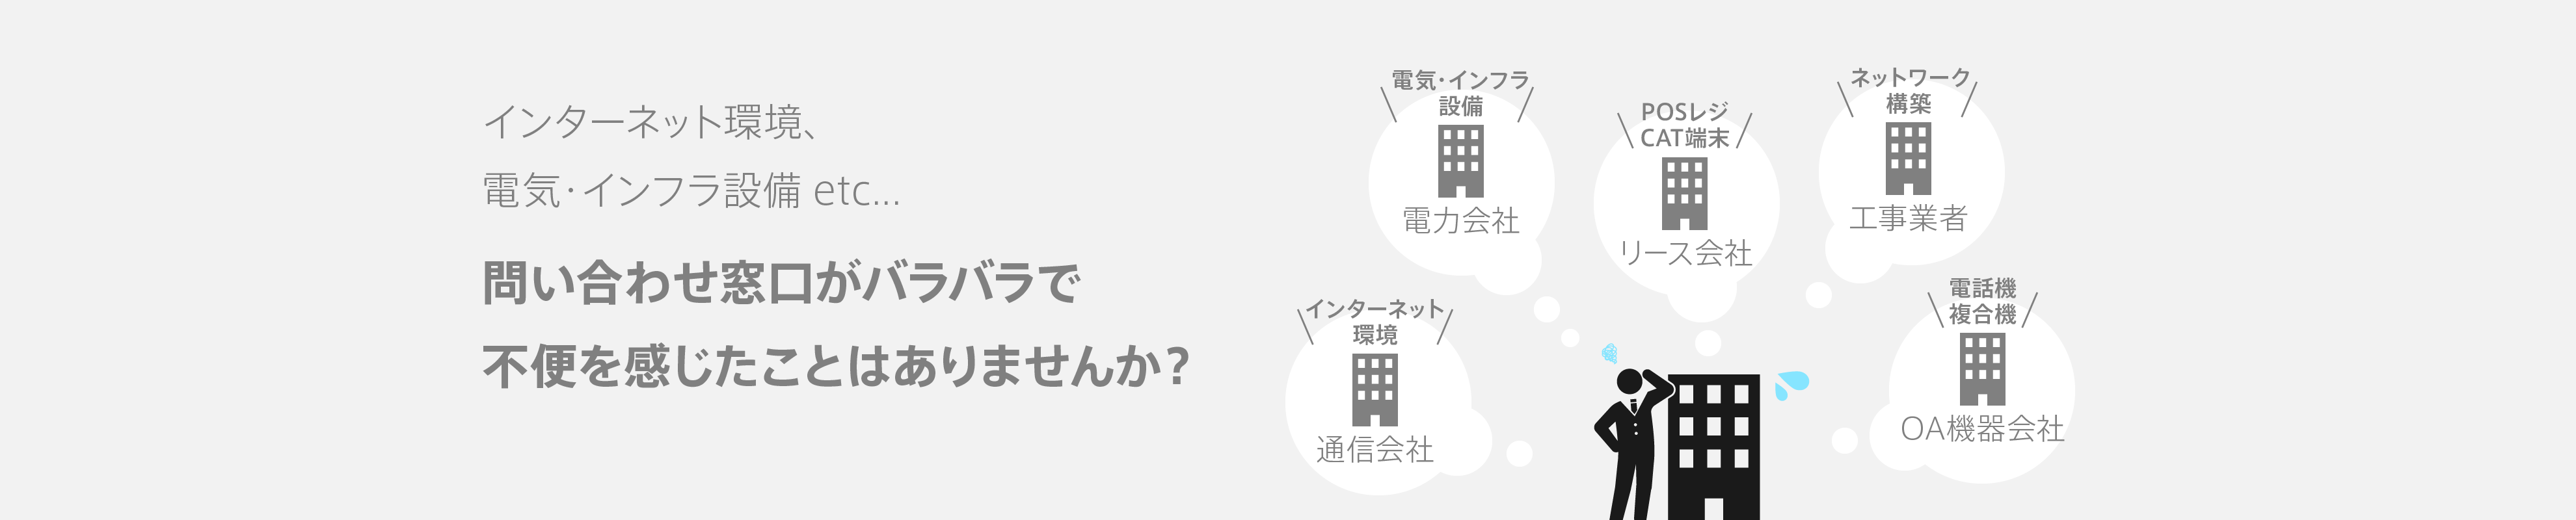 https://itsupport-corp.co.jp/wp-content/uploads/2019/01/head1.png